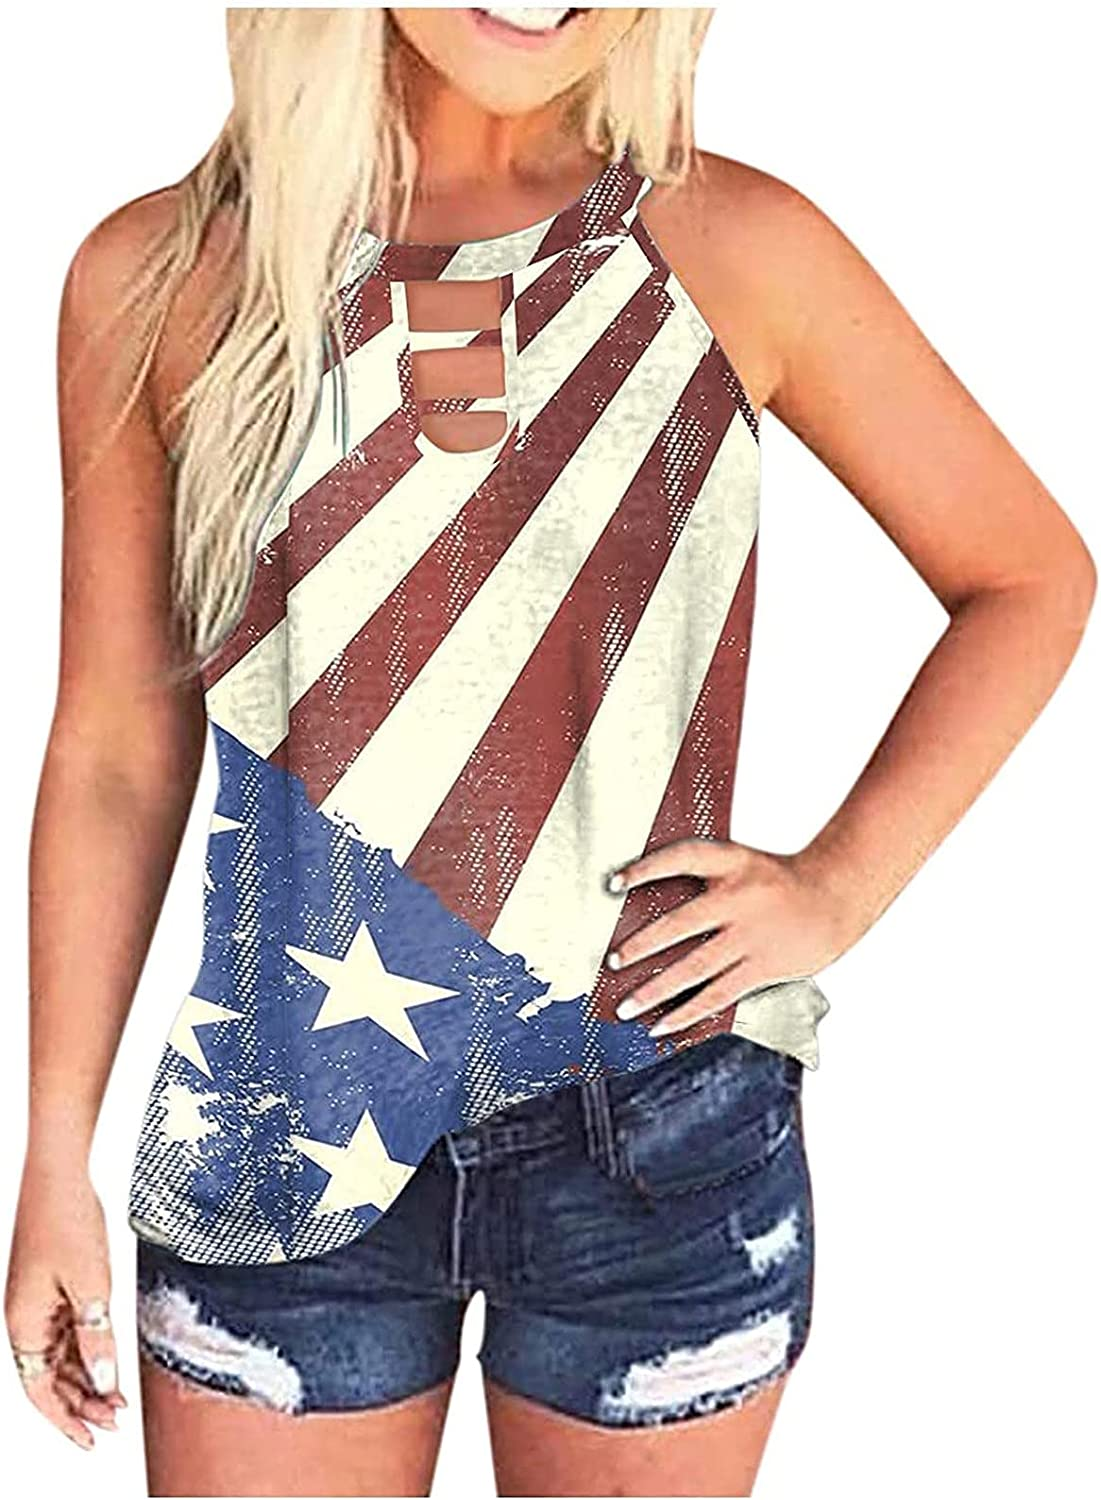 ovticza 4th Louisville-Jefferson County Mall of store July Tank Tops Fashion for Women Casual Loose Sle